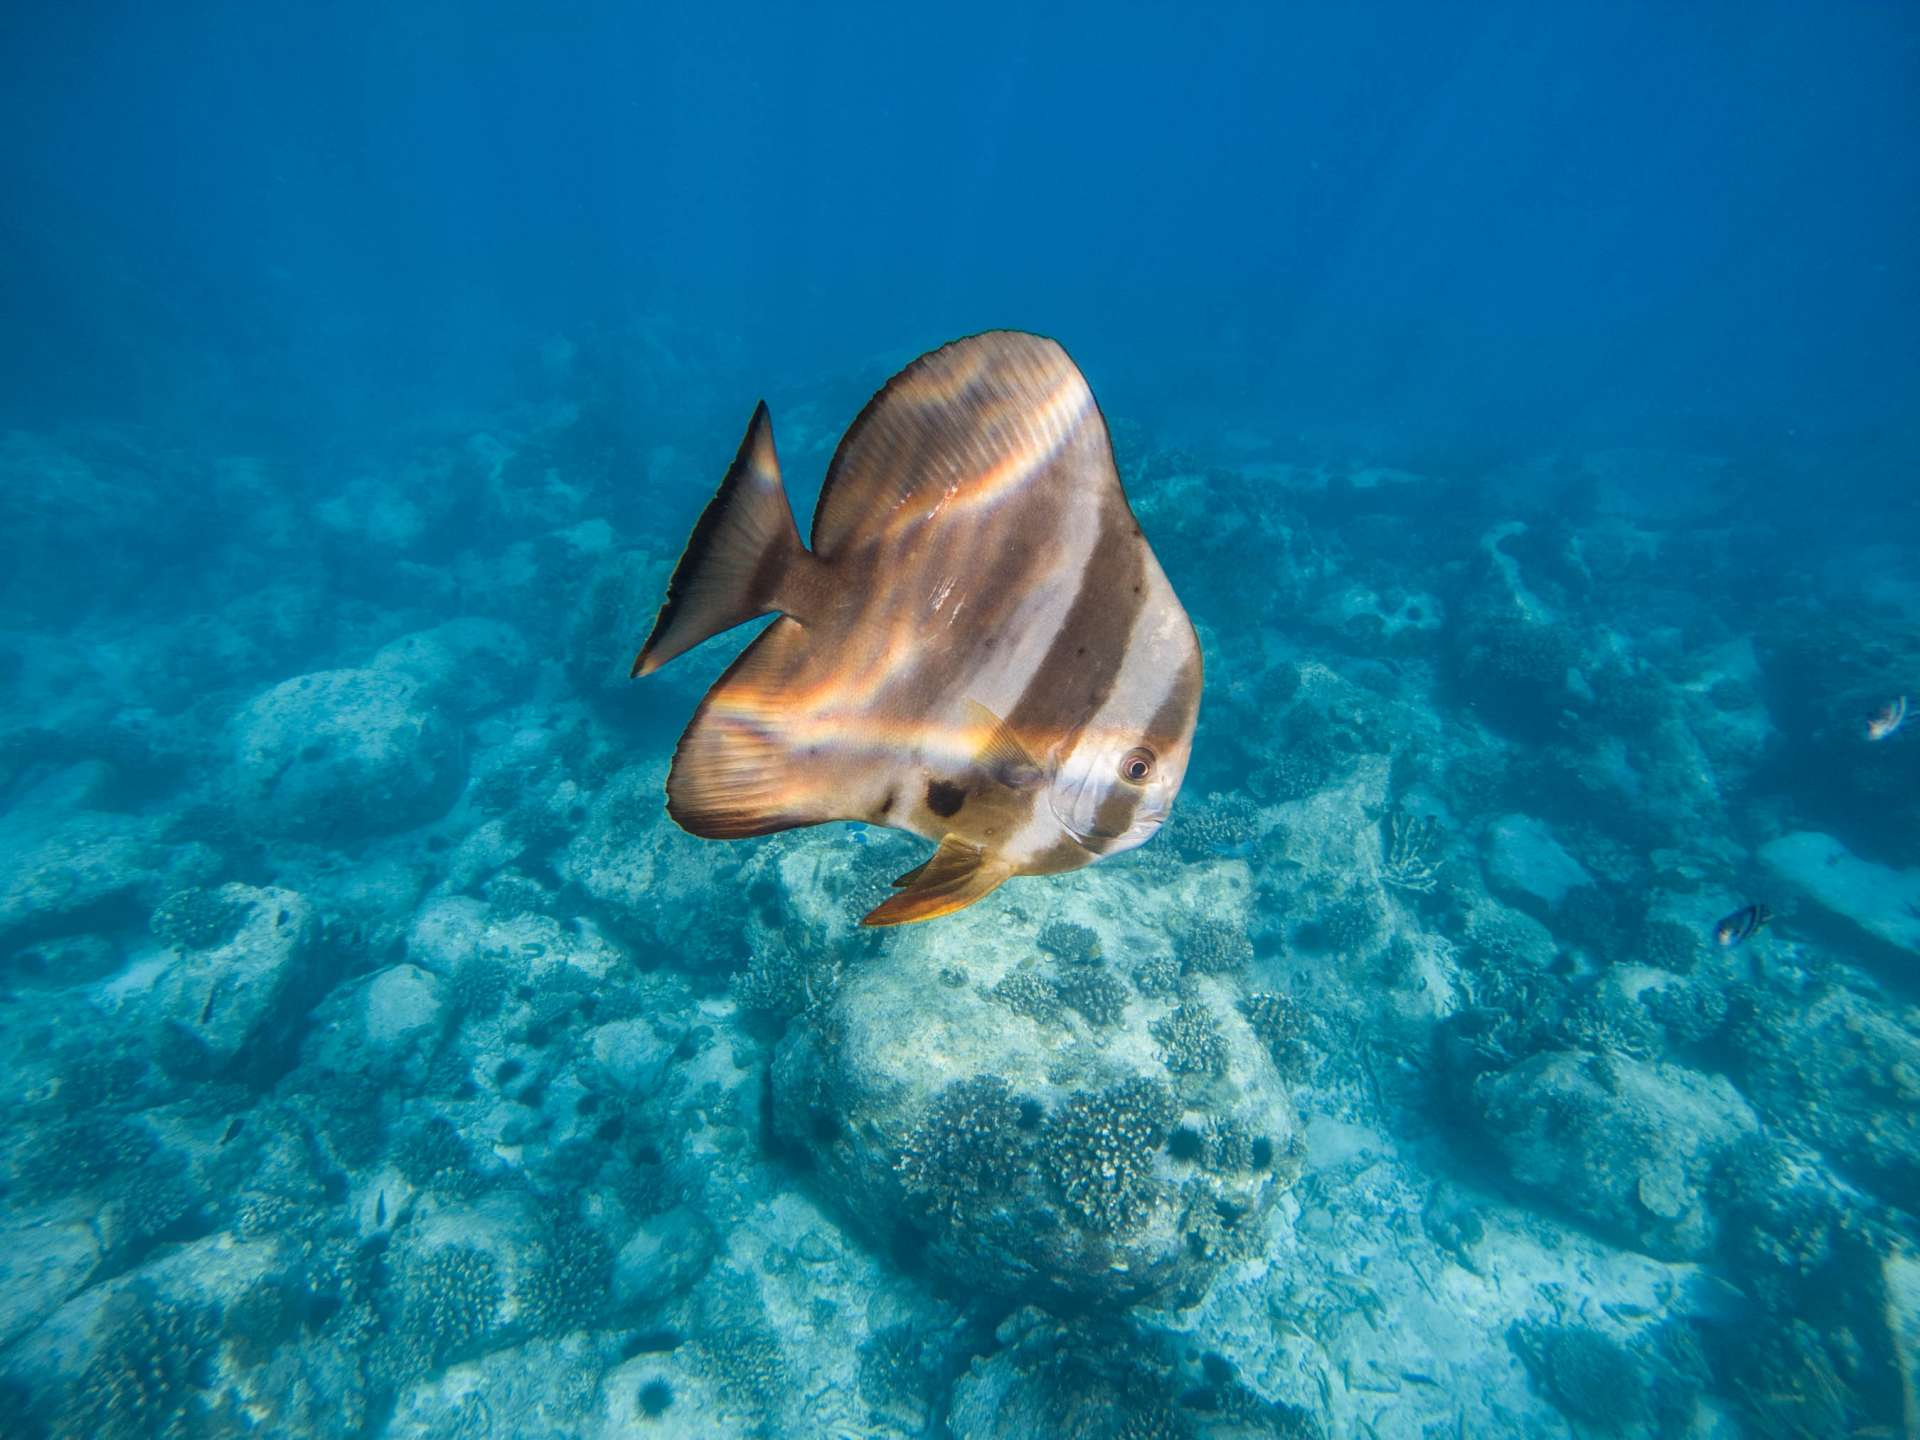 Coco island Seychelles travel photography underwater snorkeling enrico pescantini.GPR